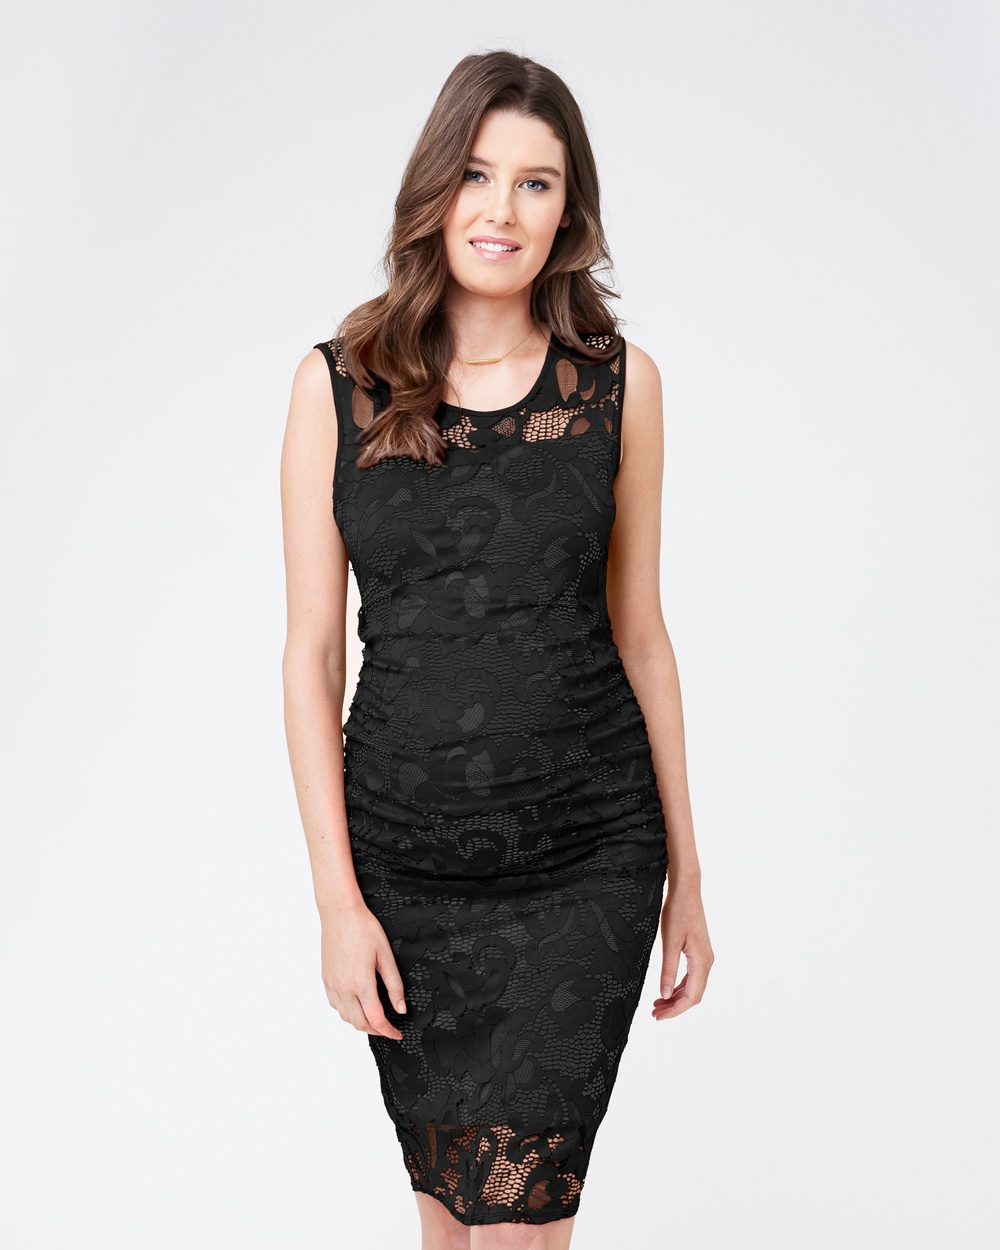 Ripe Maternity Eden Lace Dress Dresses Black Eden Lace Dress